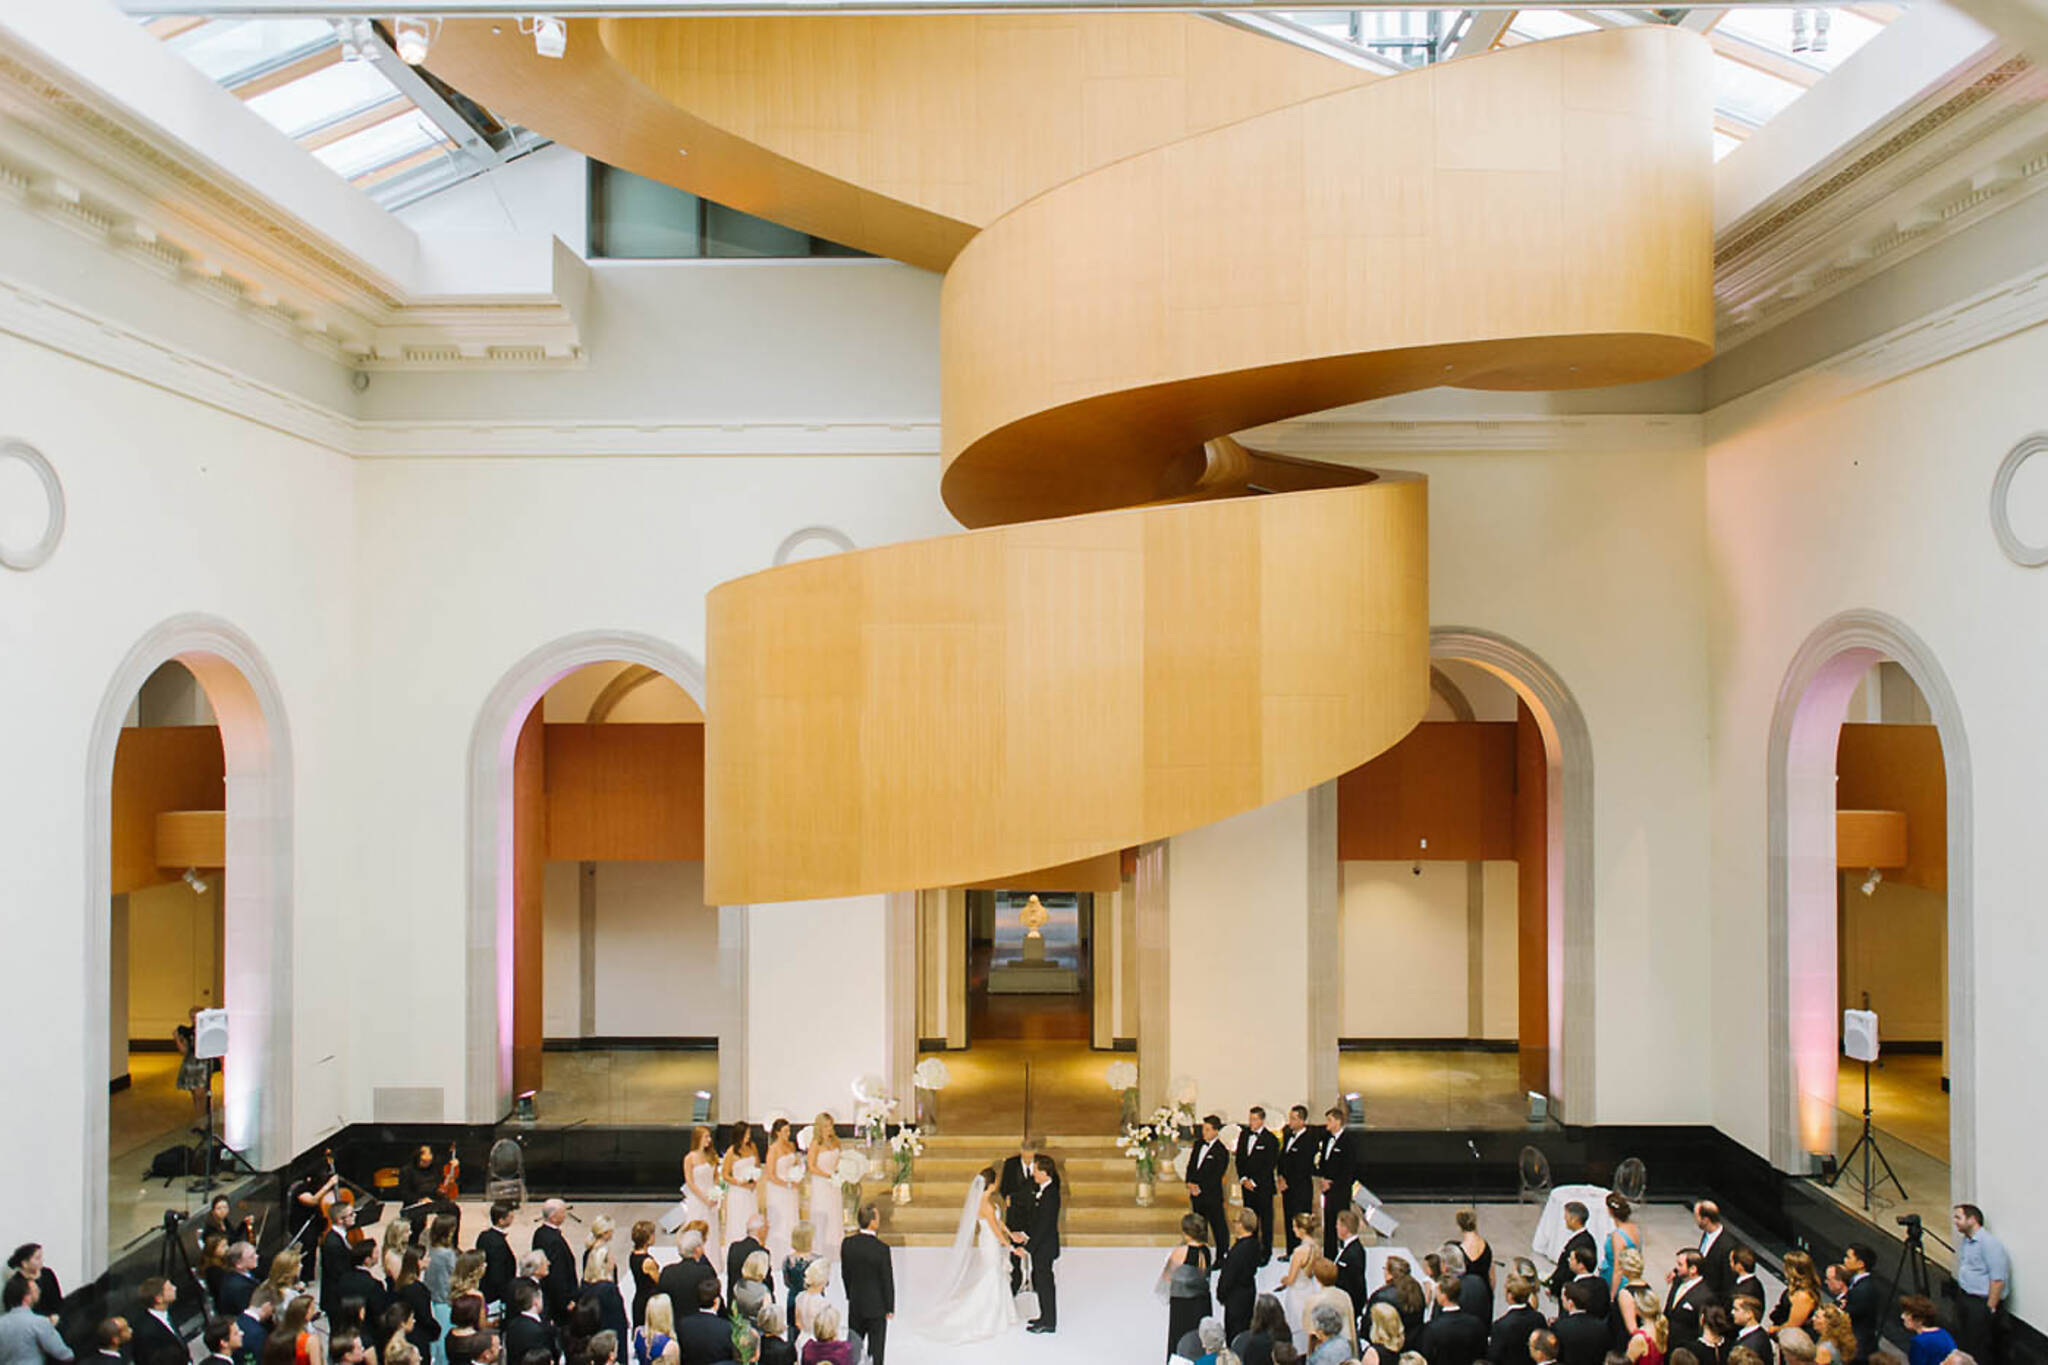 The top 30 large wedding venues in Toronto